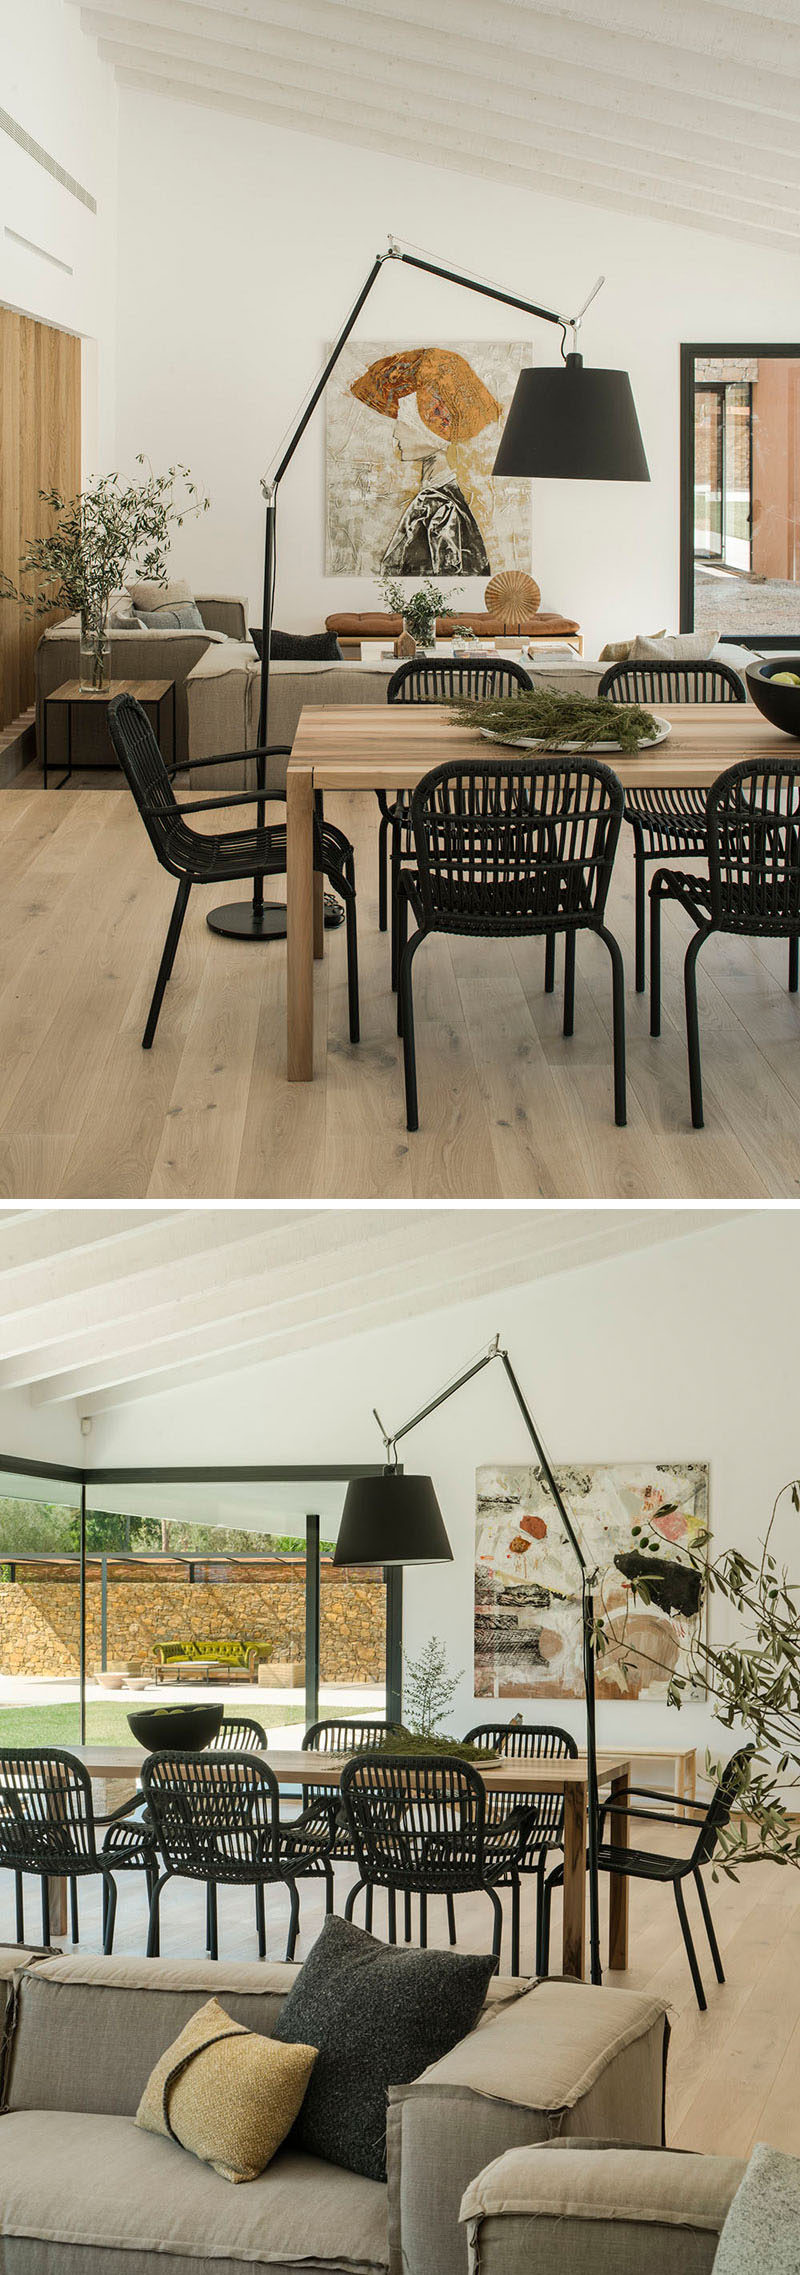 In this dining area, a wood dining table is surrounded by black dining chairs. #DiningTable #DiningChairs